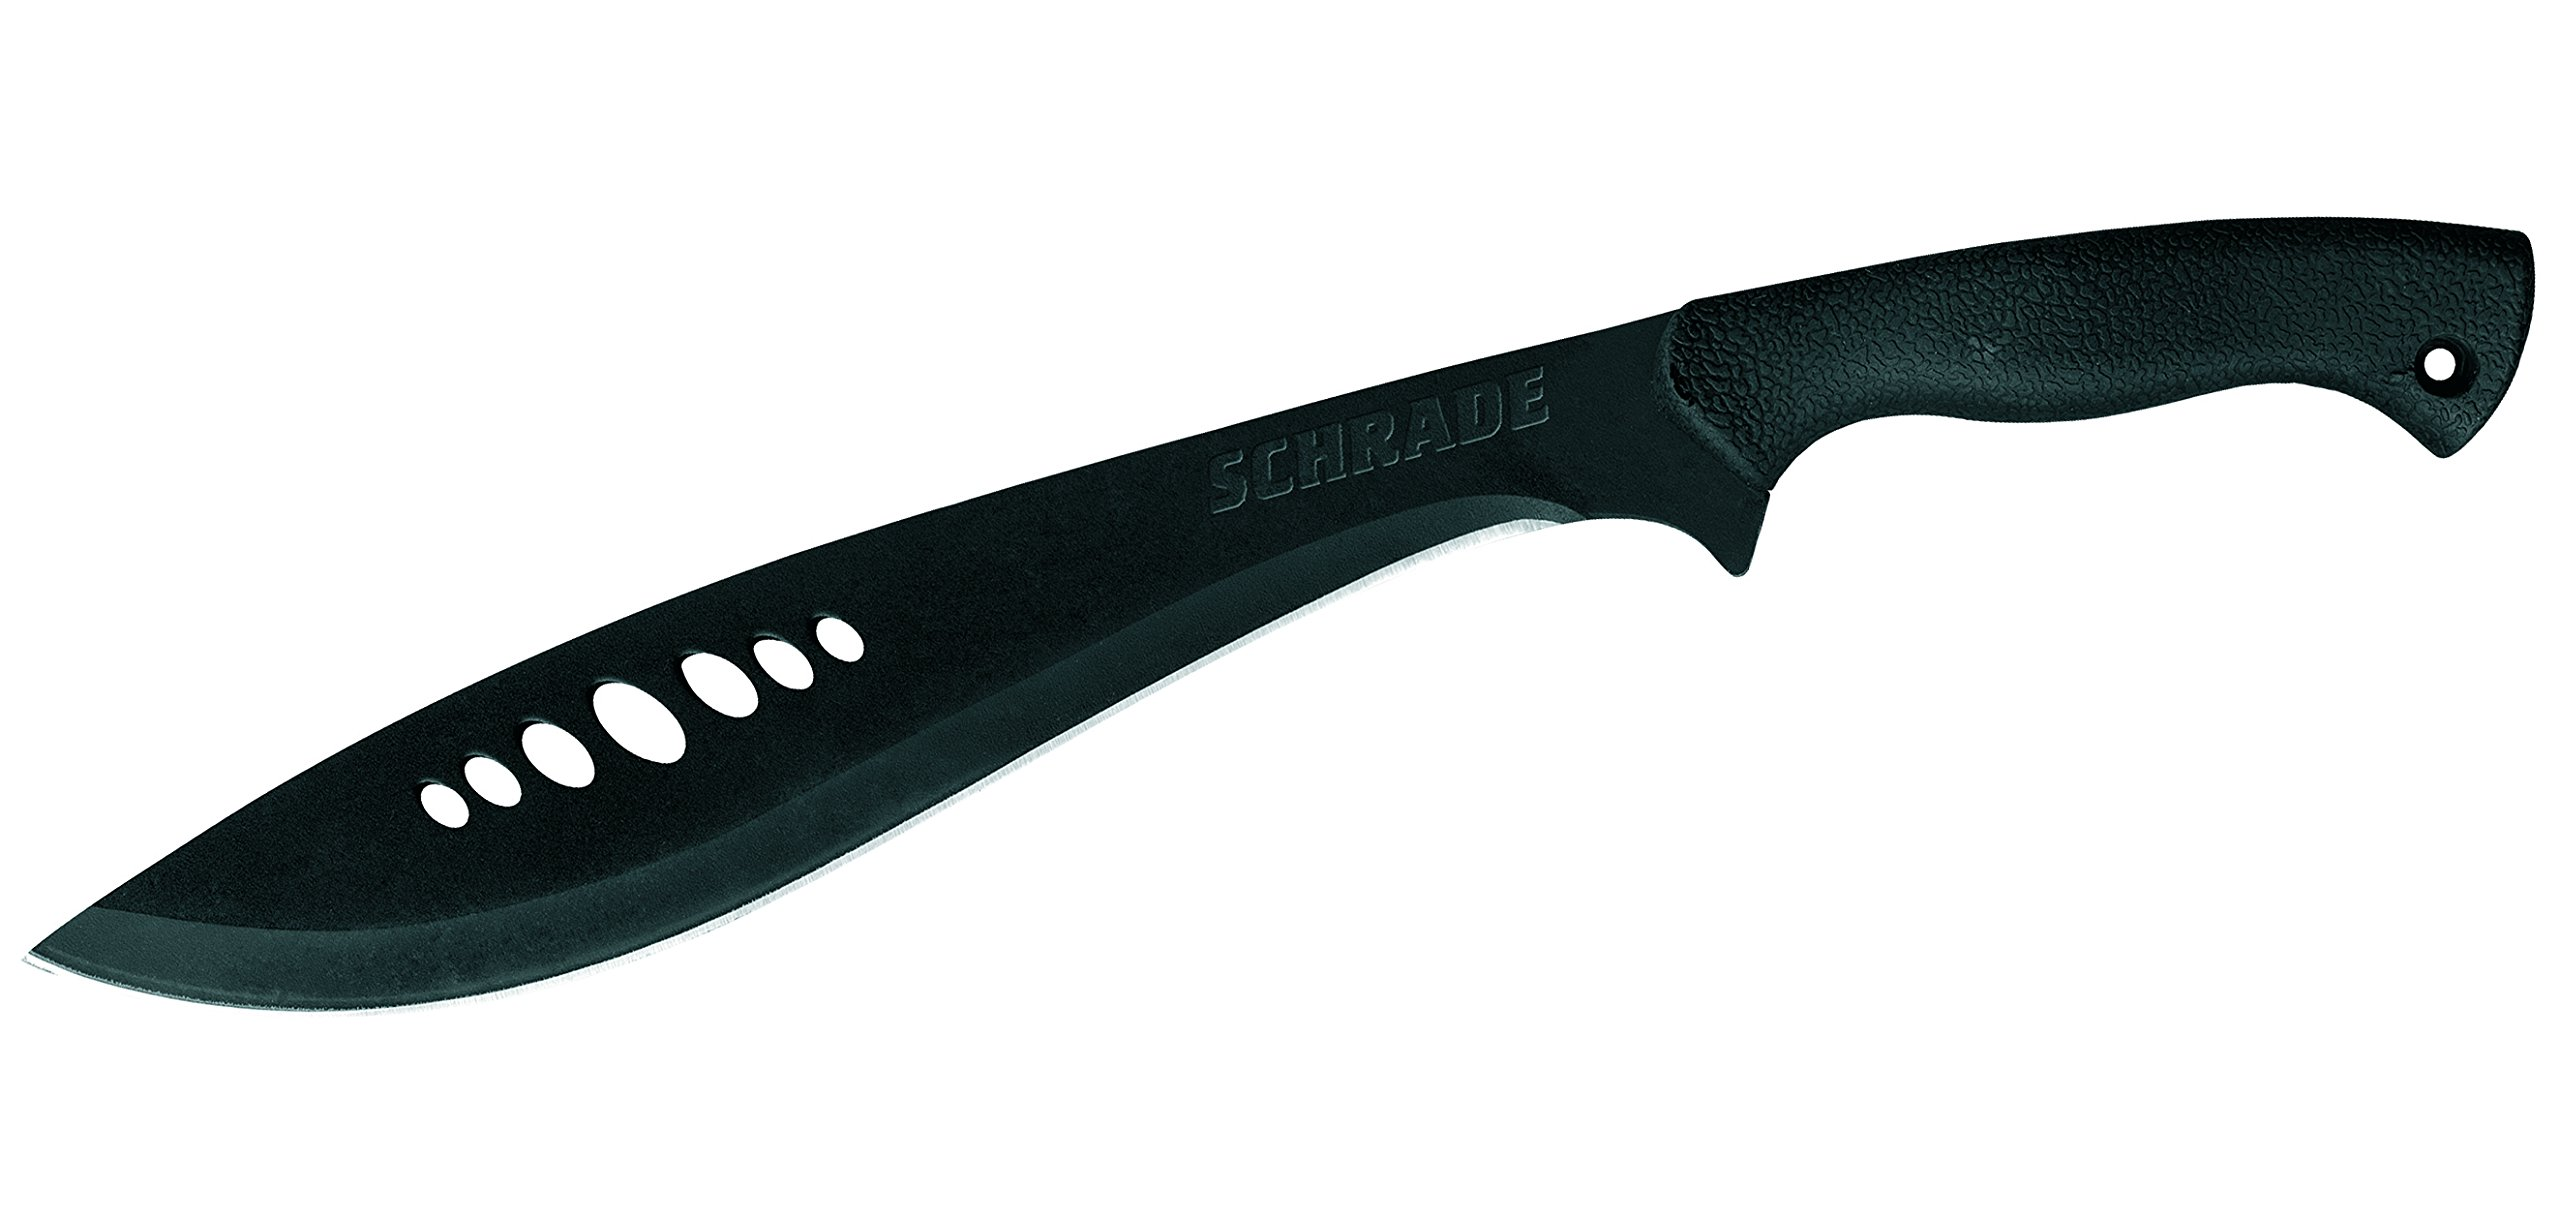 Schrade SCHKM1 19.7in Kukri Machete with 13.3in Stainless Steel Blade and Safe-T-Grip Handle for Outdoor Survival, Camping and Bushcraft by Schrade (Image #2)